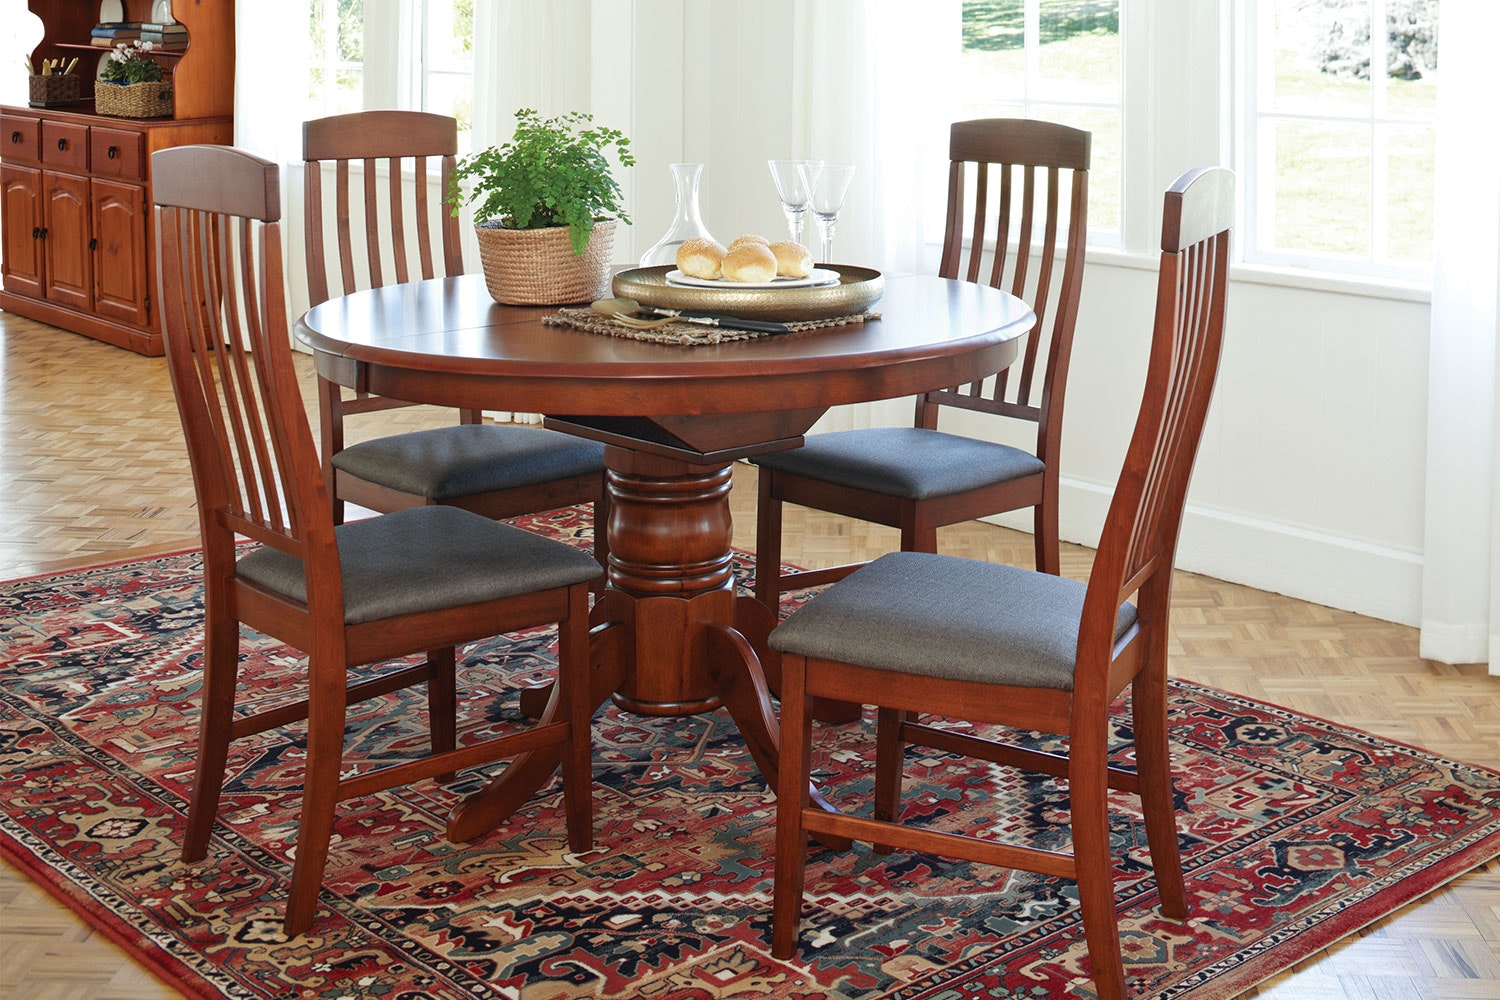 1200 Caprice Extension Dining Table by Nero Furniture